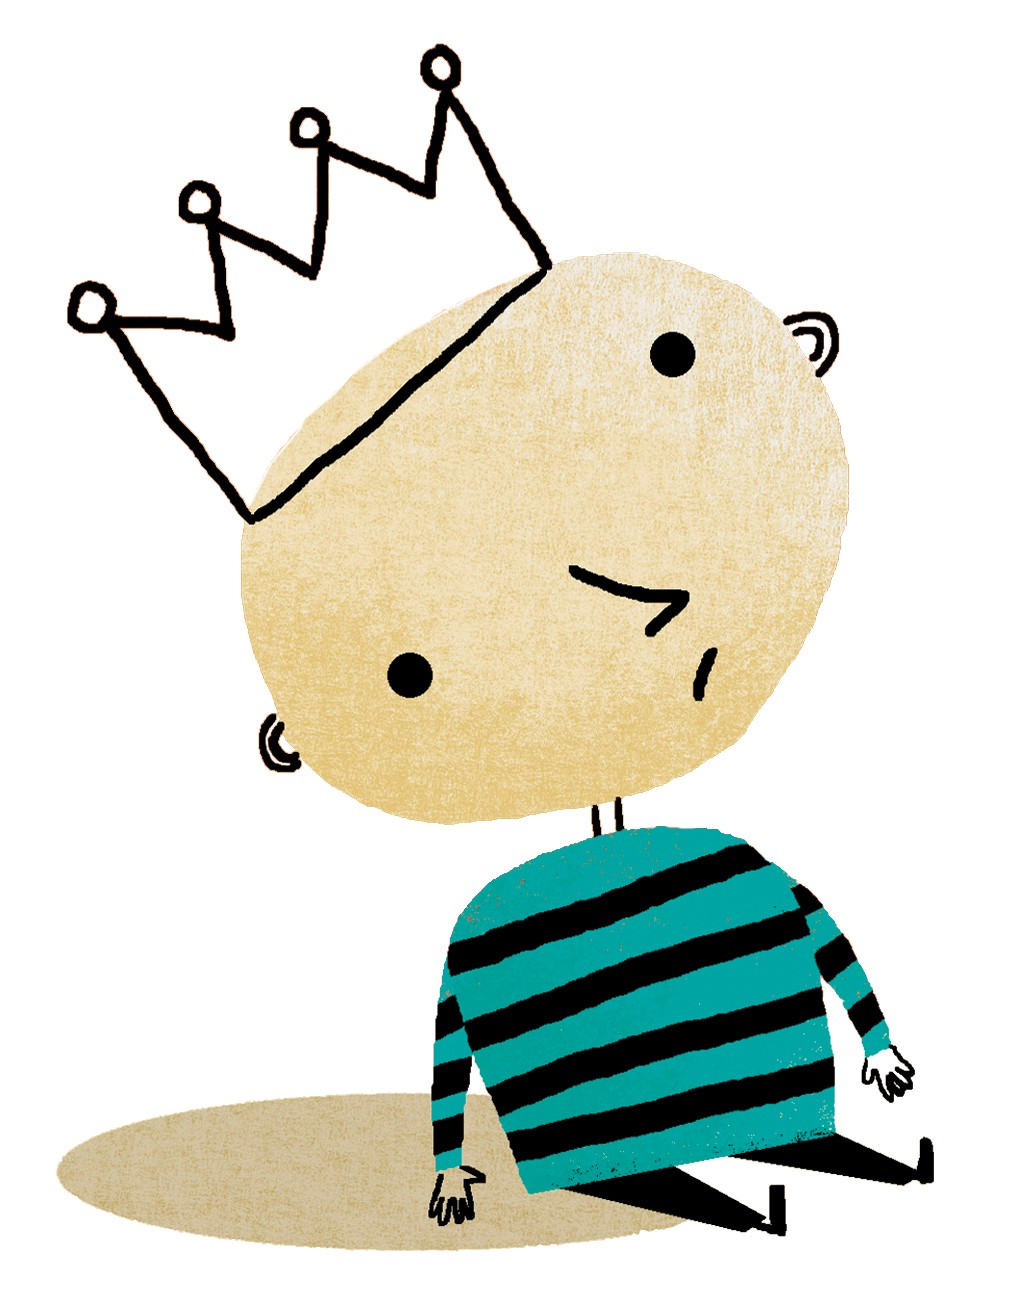 illustration of small child with crown on head.